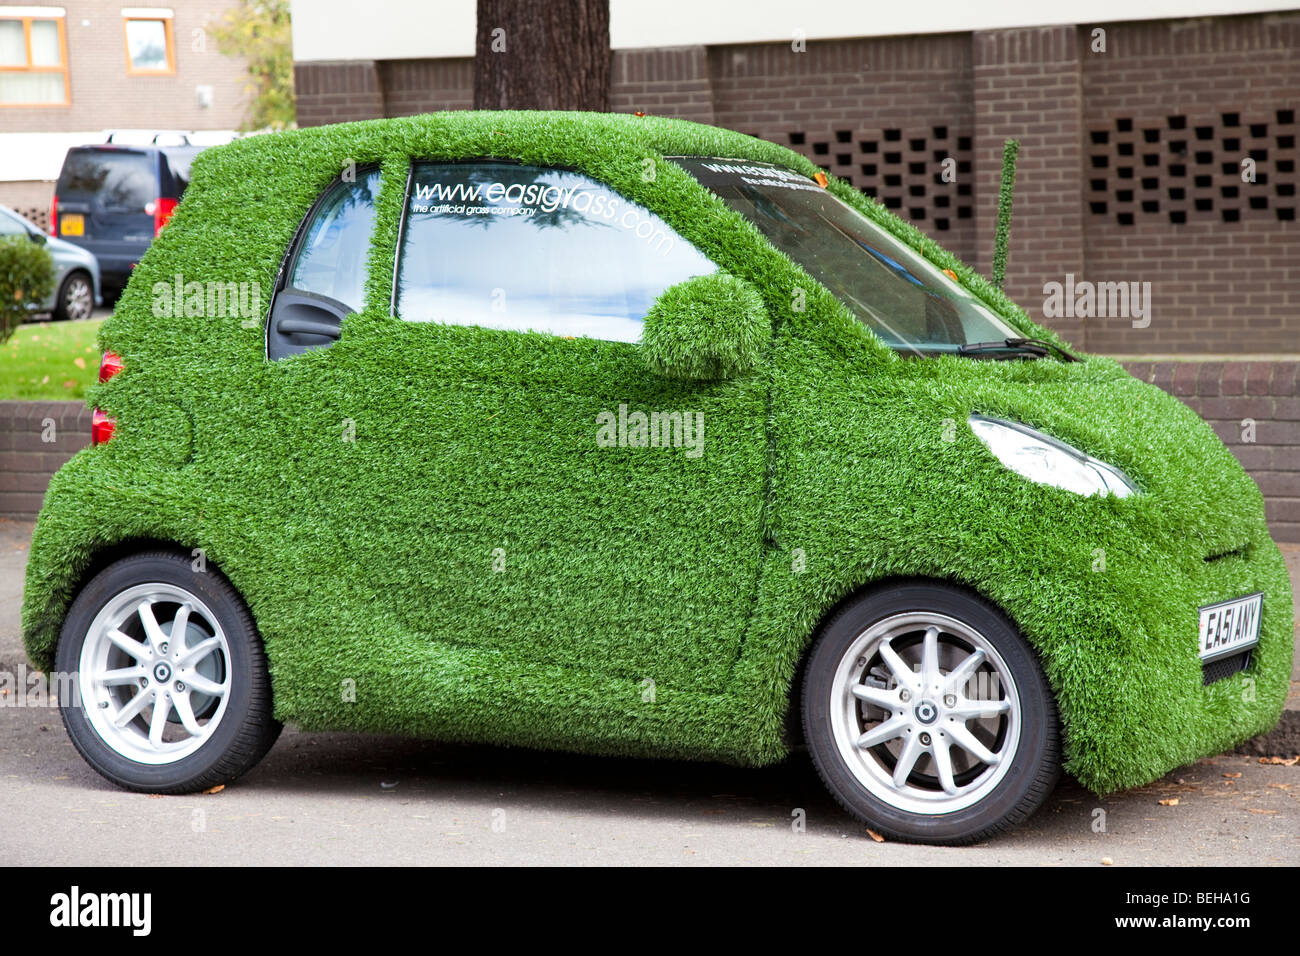 smart car covered in artificial grass in street london uk stock photo  royalty free image